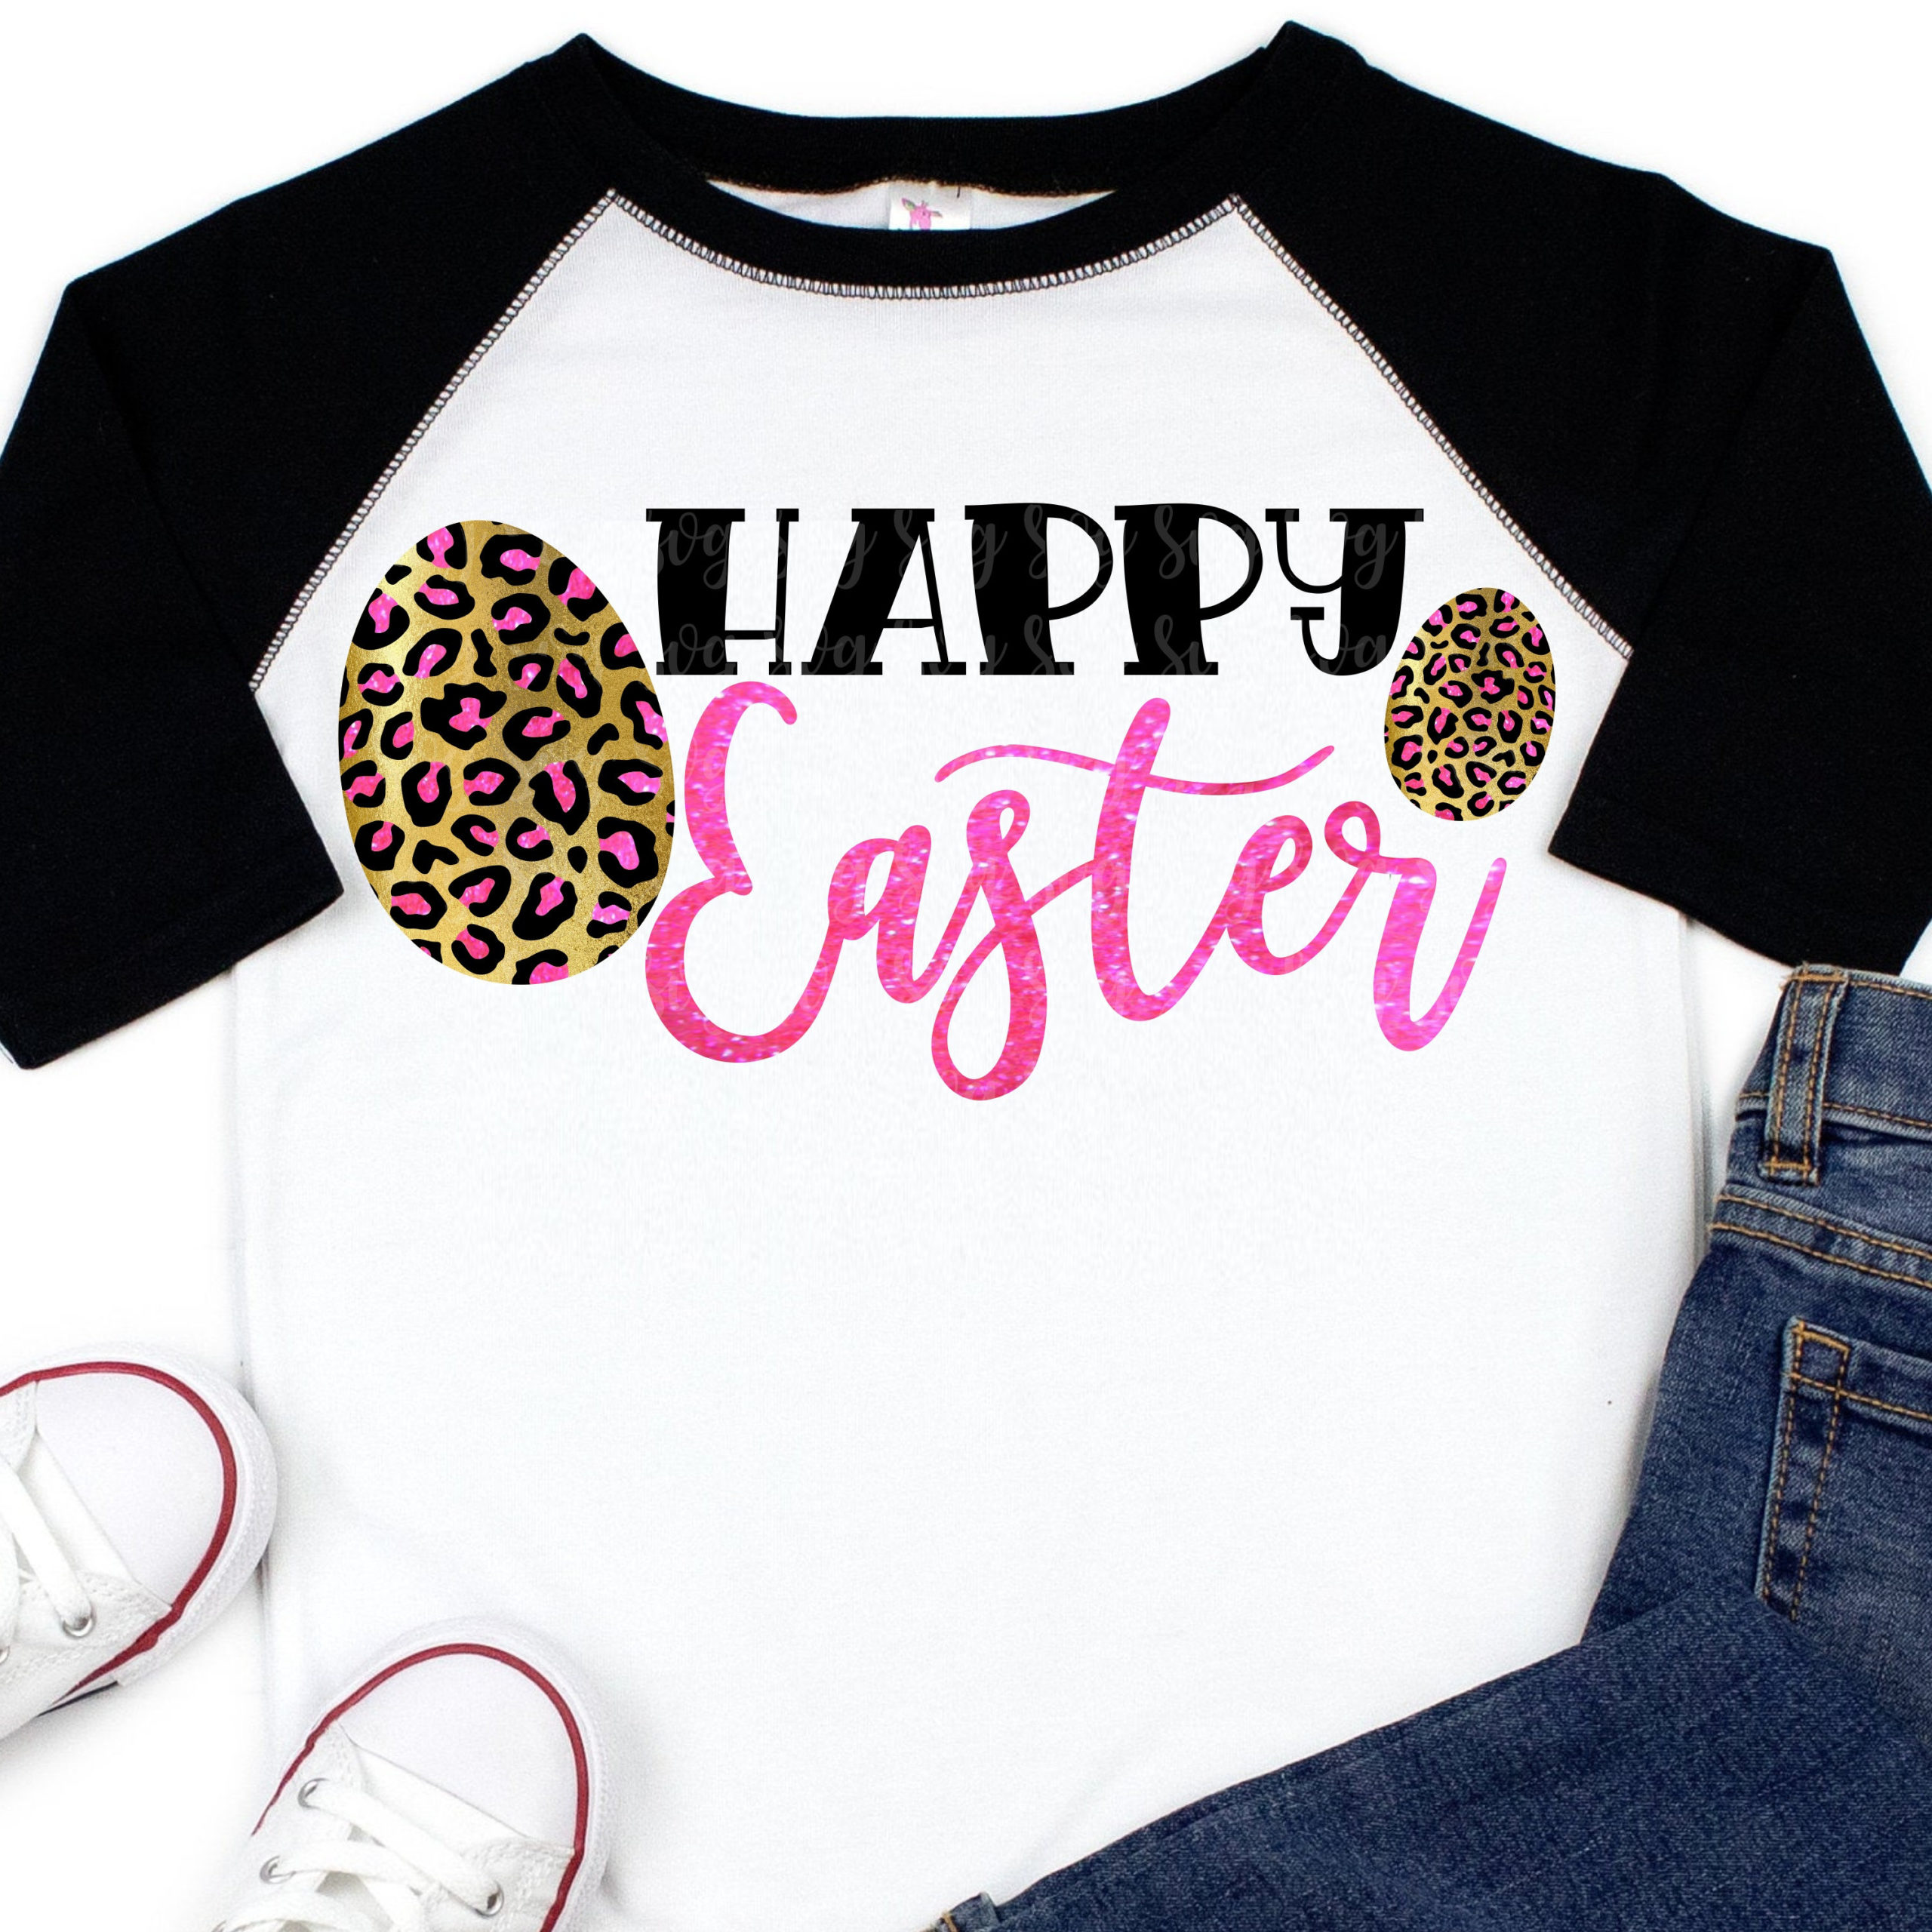 Leopard Print Happy Easter Svg Dxf Png Eps File For Cutting Machines Cricut Easter Egg Svg Plaid Svg Easter Svg Leopard Svg Svg For Cricut Svg For Cricut